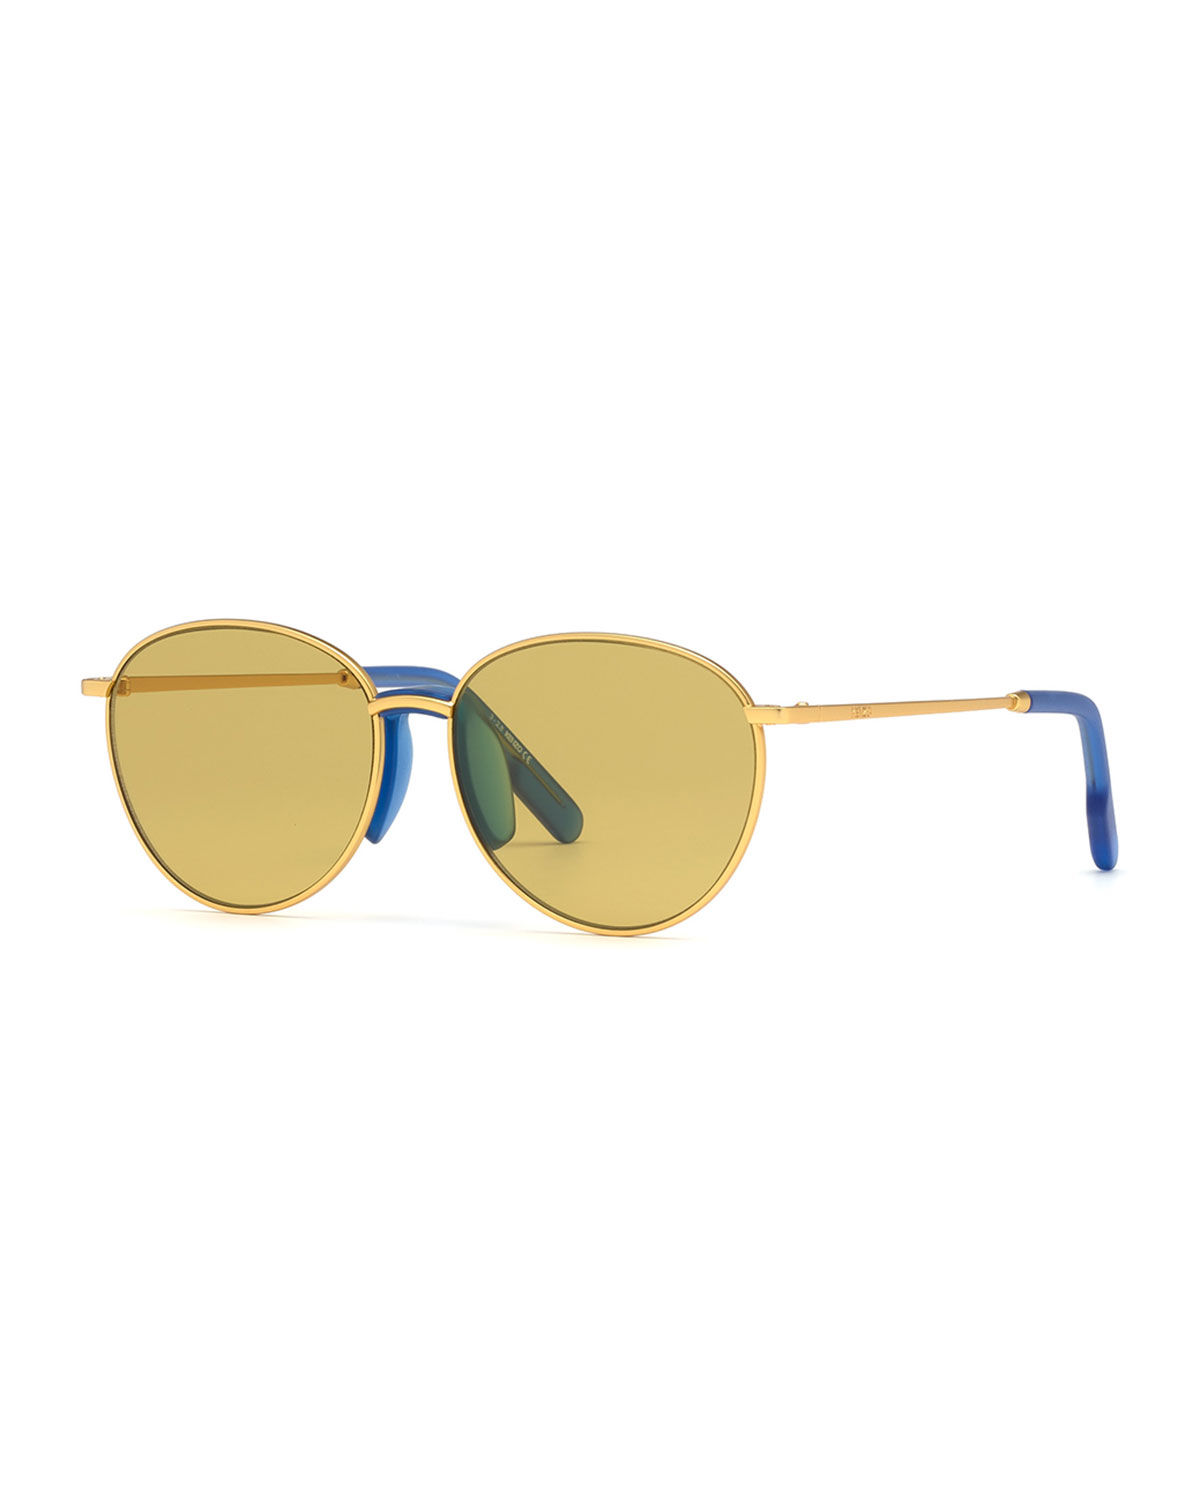 Kenzo Men's Round Metal Sunglasses w/ Injected Plastic Trim